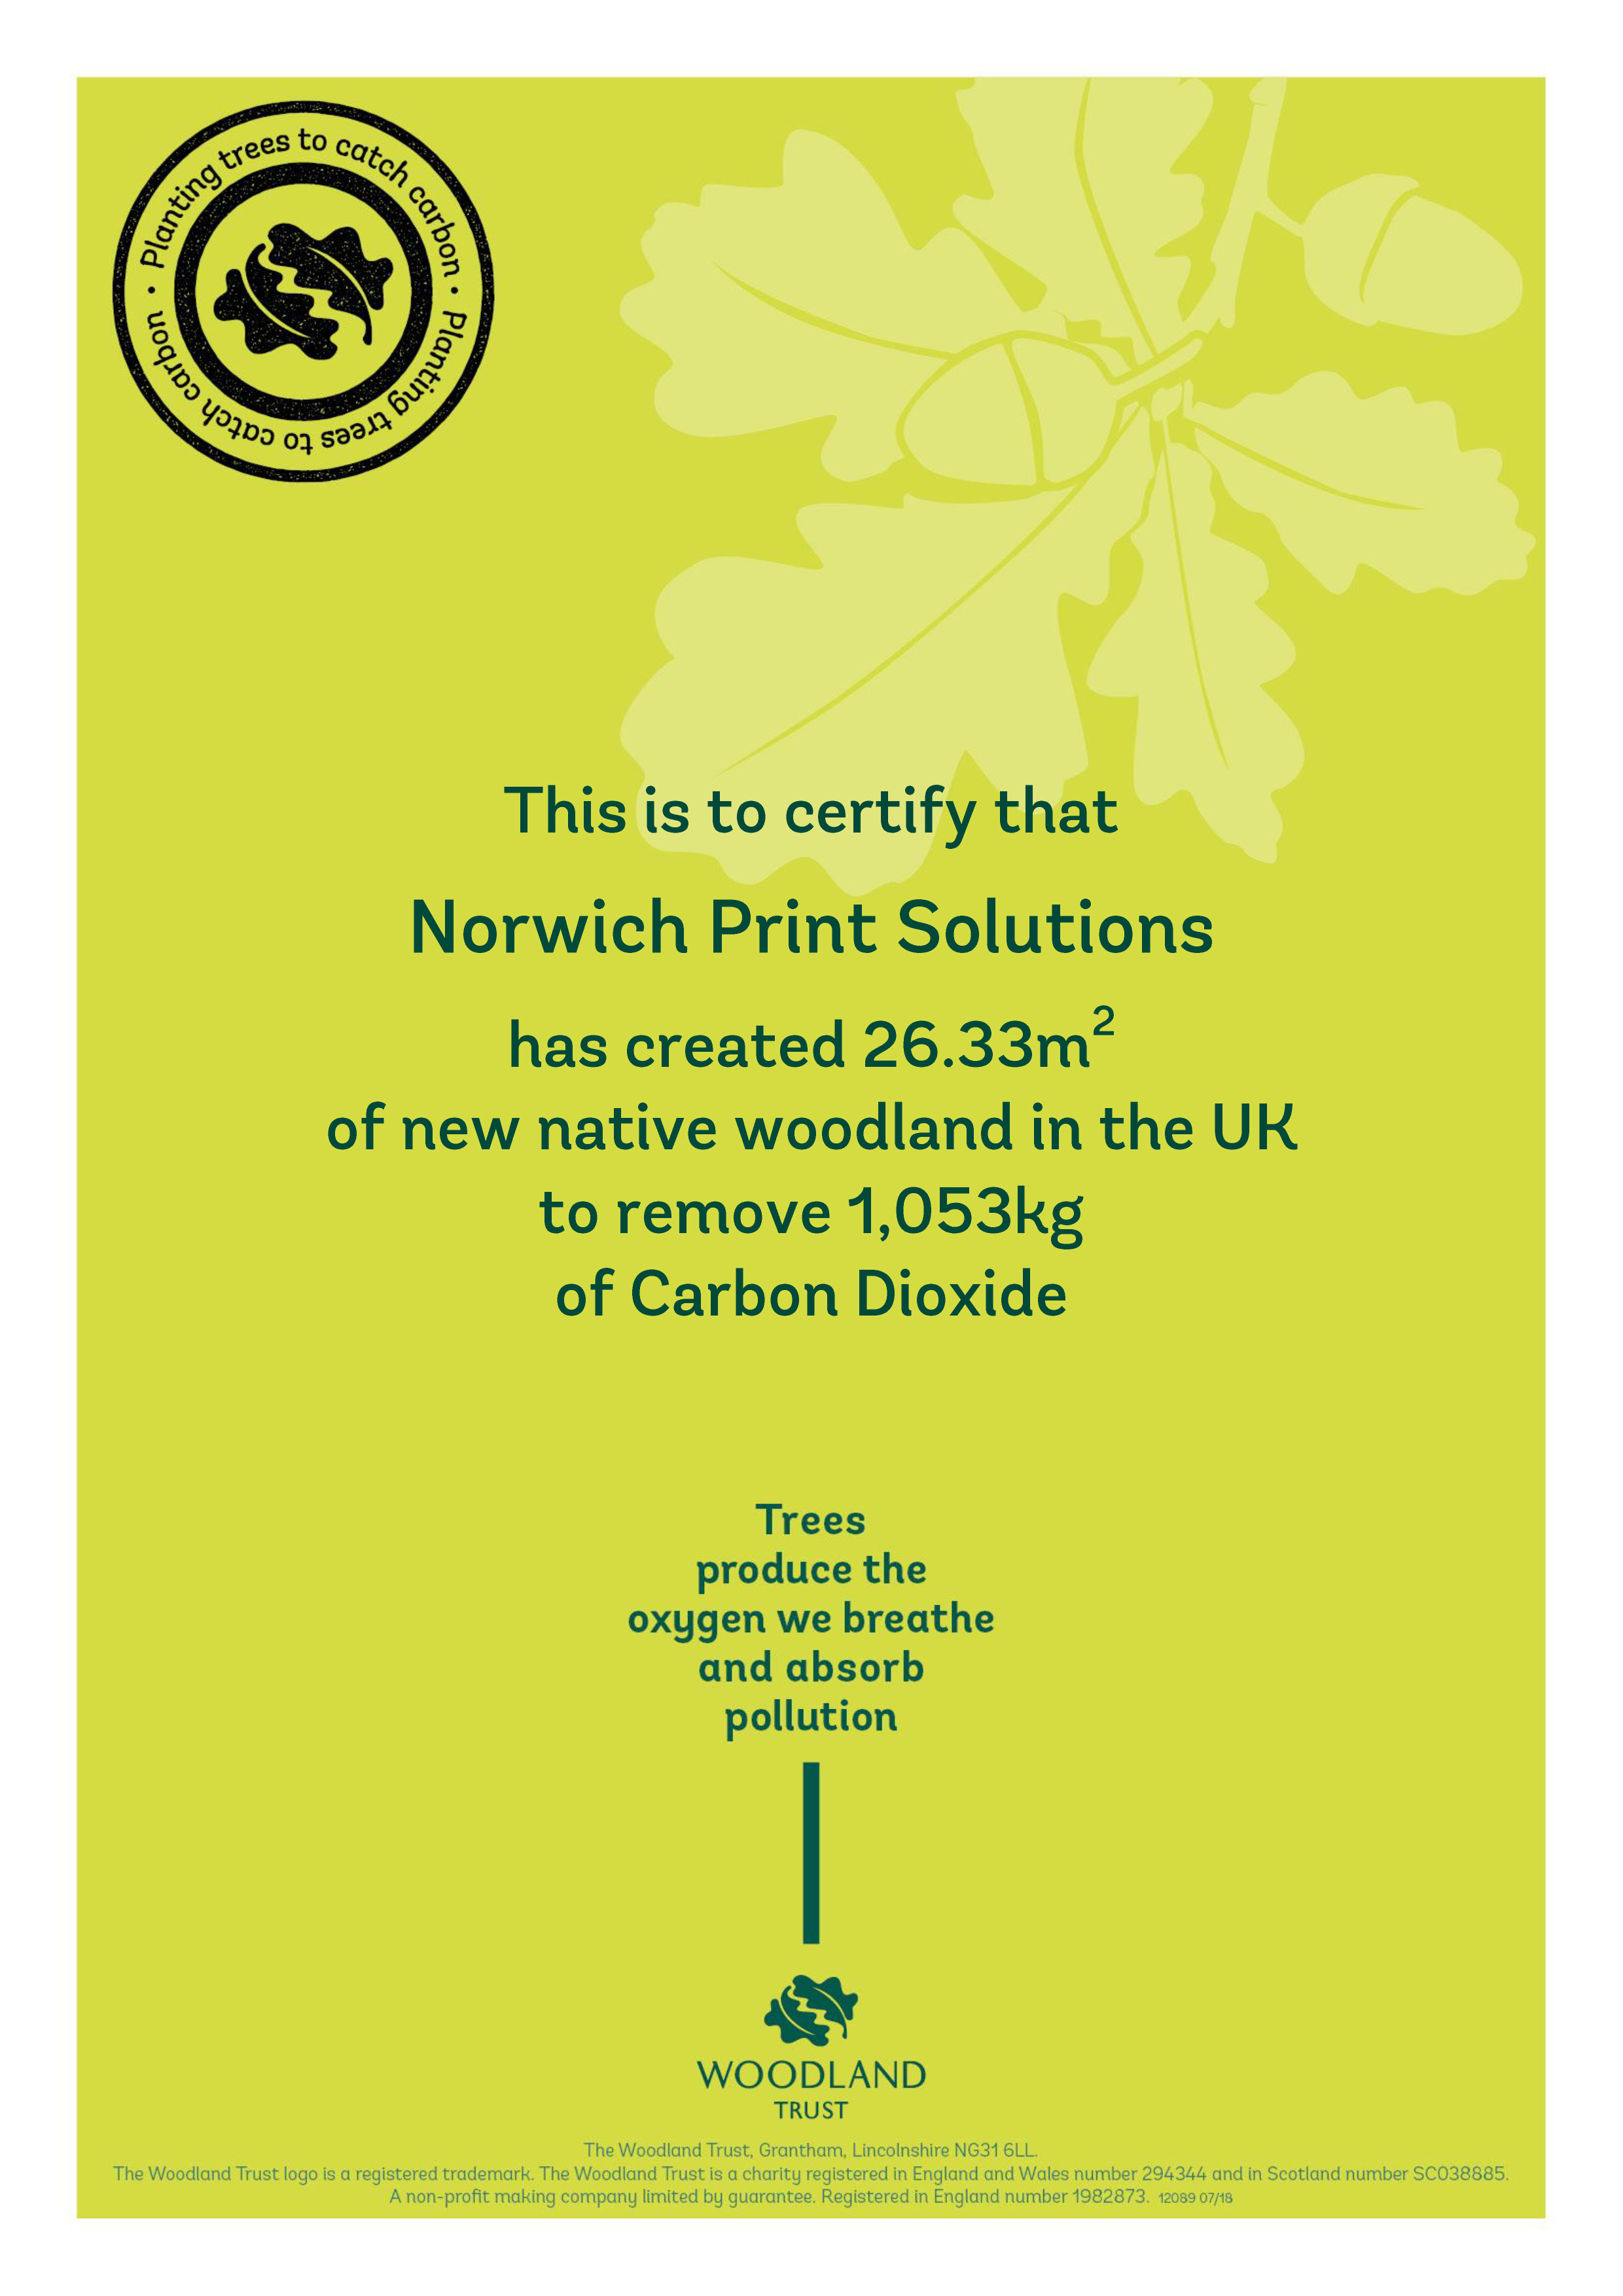 Local printers works with Woodland Trust